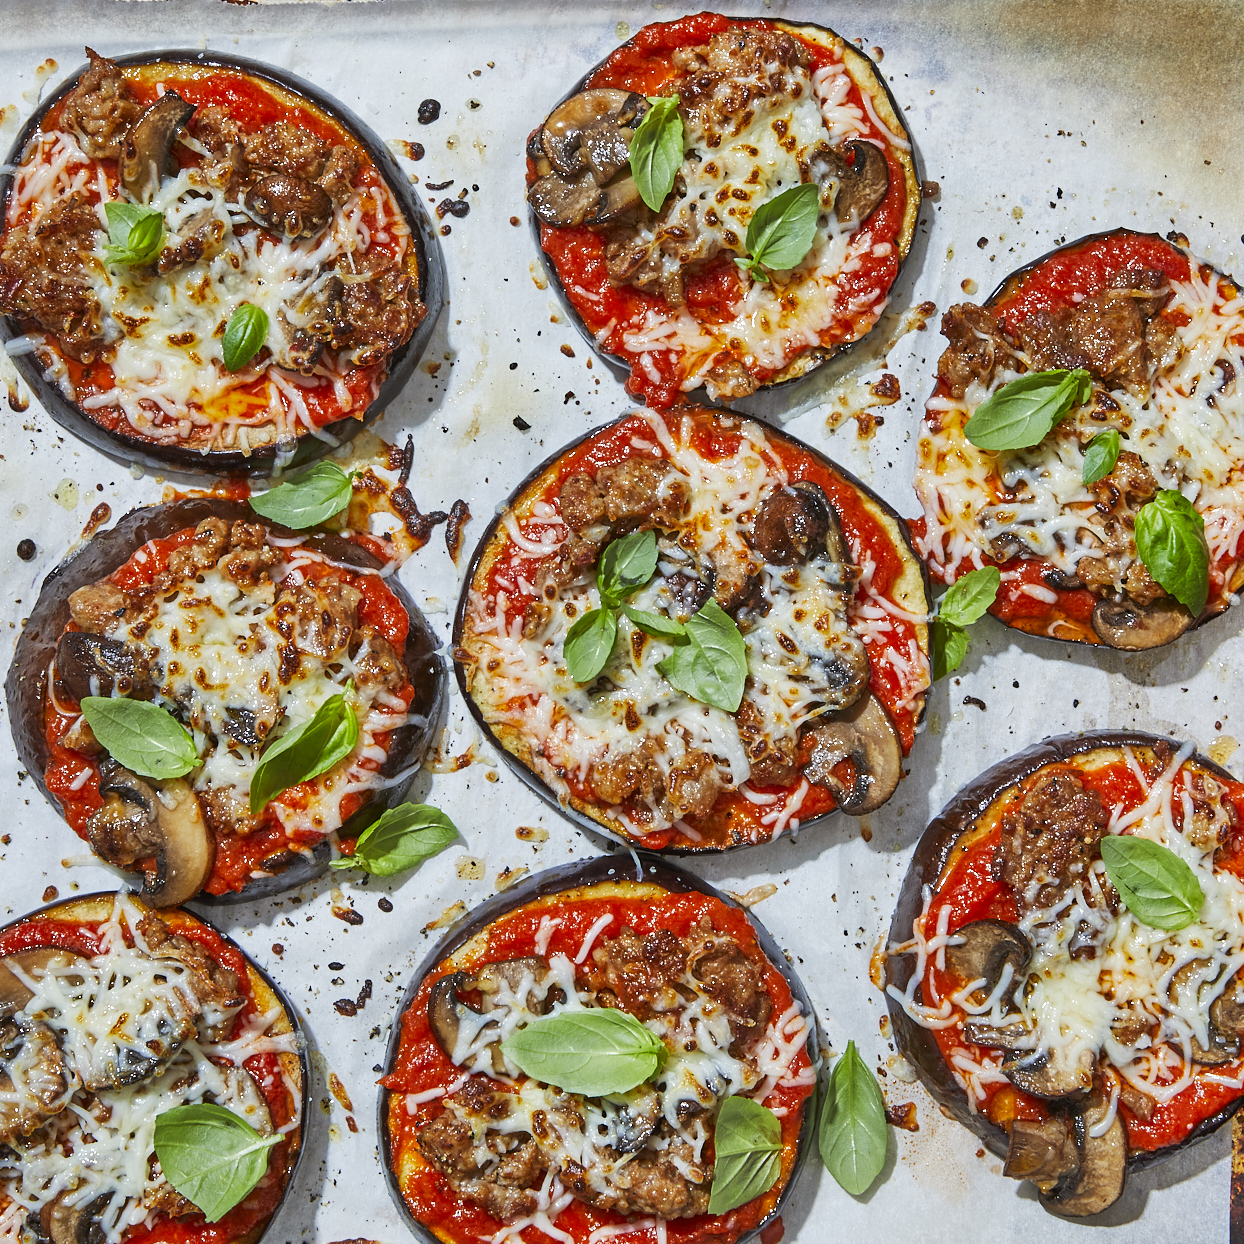 These eggplant pizzas have all the classic flavors of a real pizza without all the carbs. Opt for spicy Italian sausage if you like the heat! Serve these mini pizzas with a green salad on the side to complete the meal. Source: EatingWell.com, May 2020